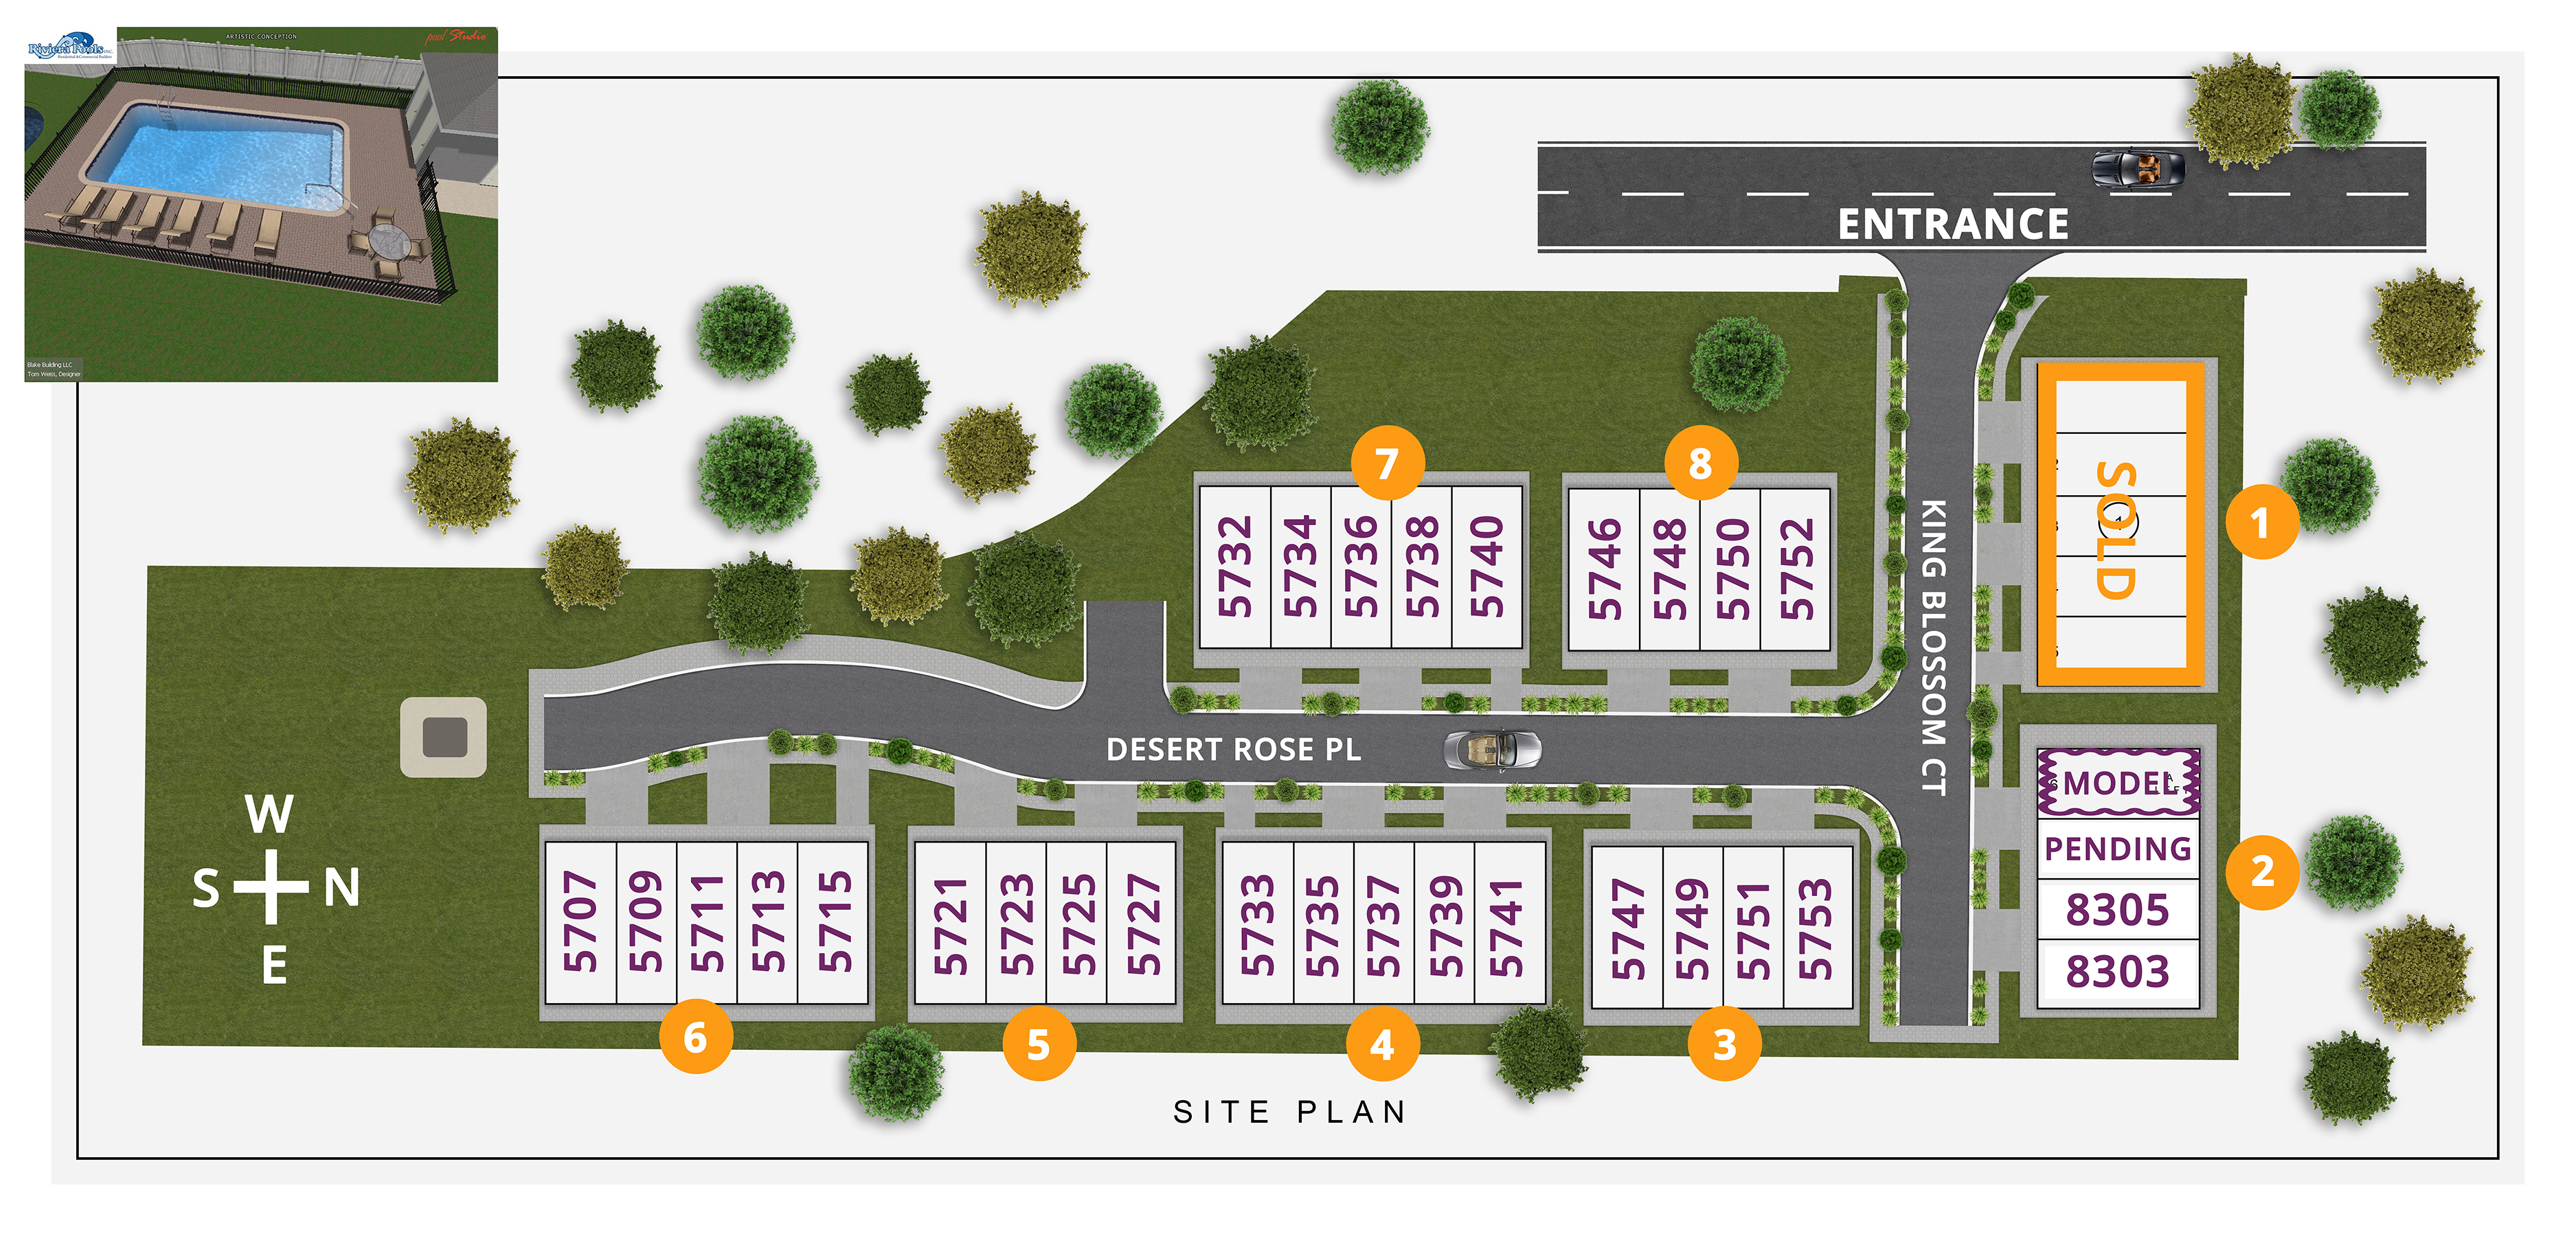 KINGSPORT SITE PLAN NUMBERS